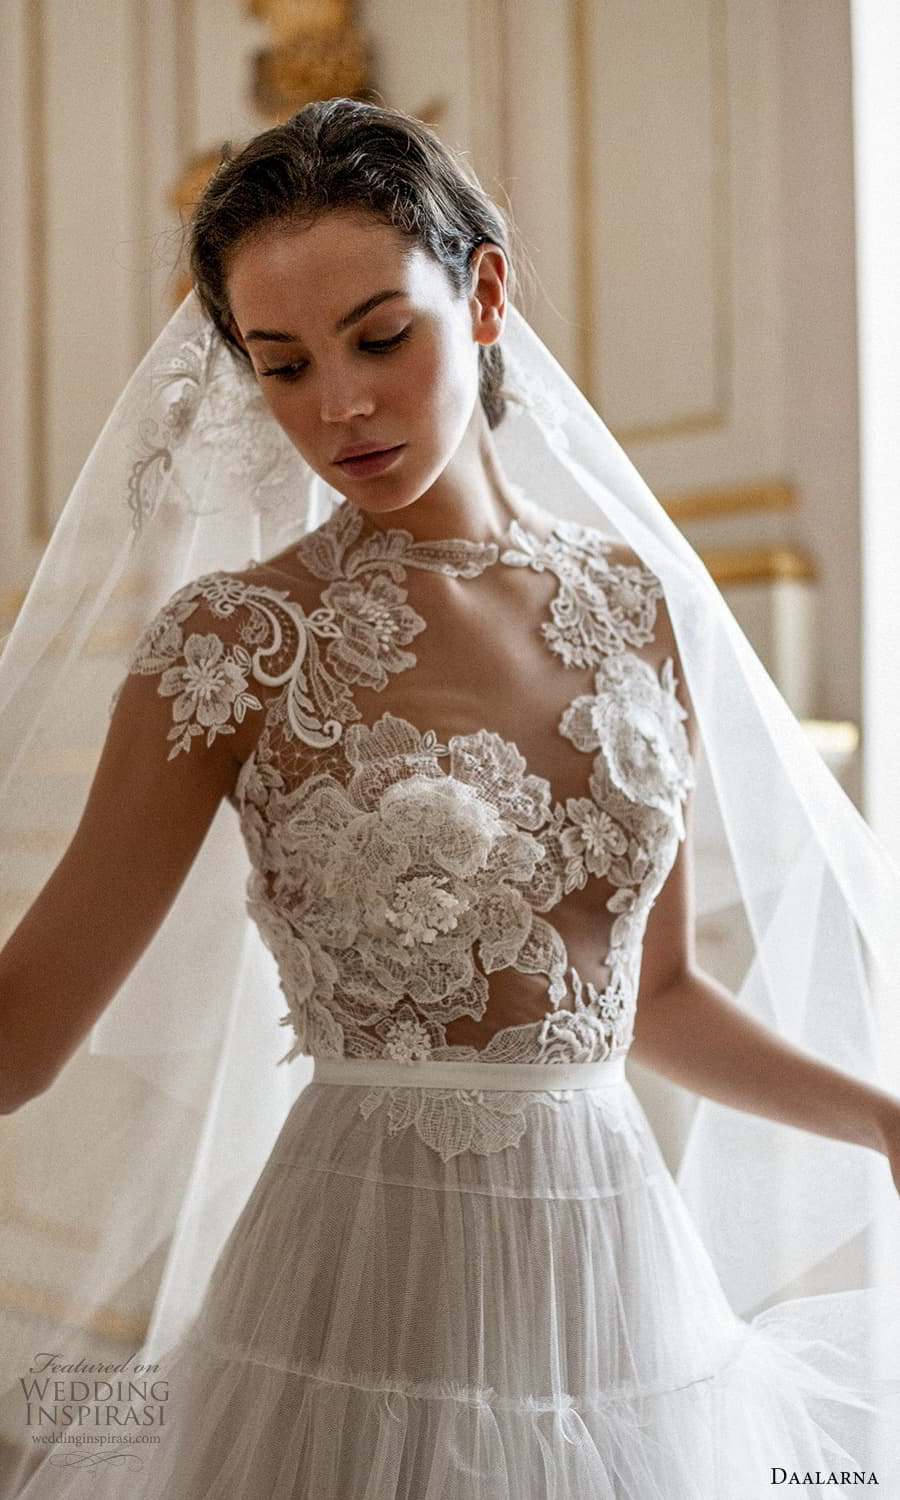 daalarna spring 2022 bridal cap sleeve jewel neckline sheer embellished lace bodice clean skirt a line ball gown wedding dress chapel train (13) zv